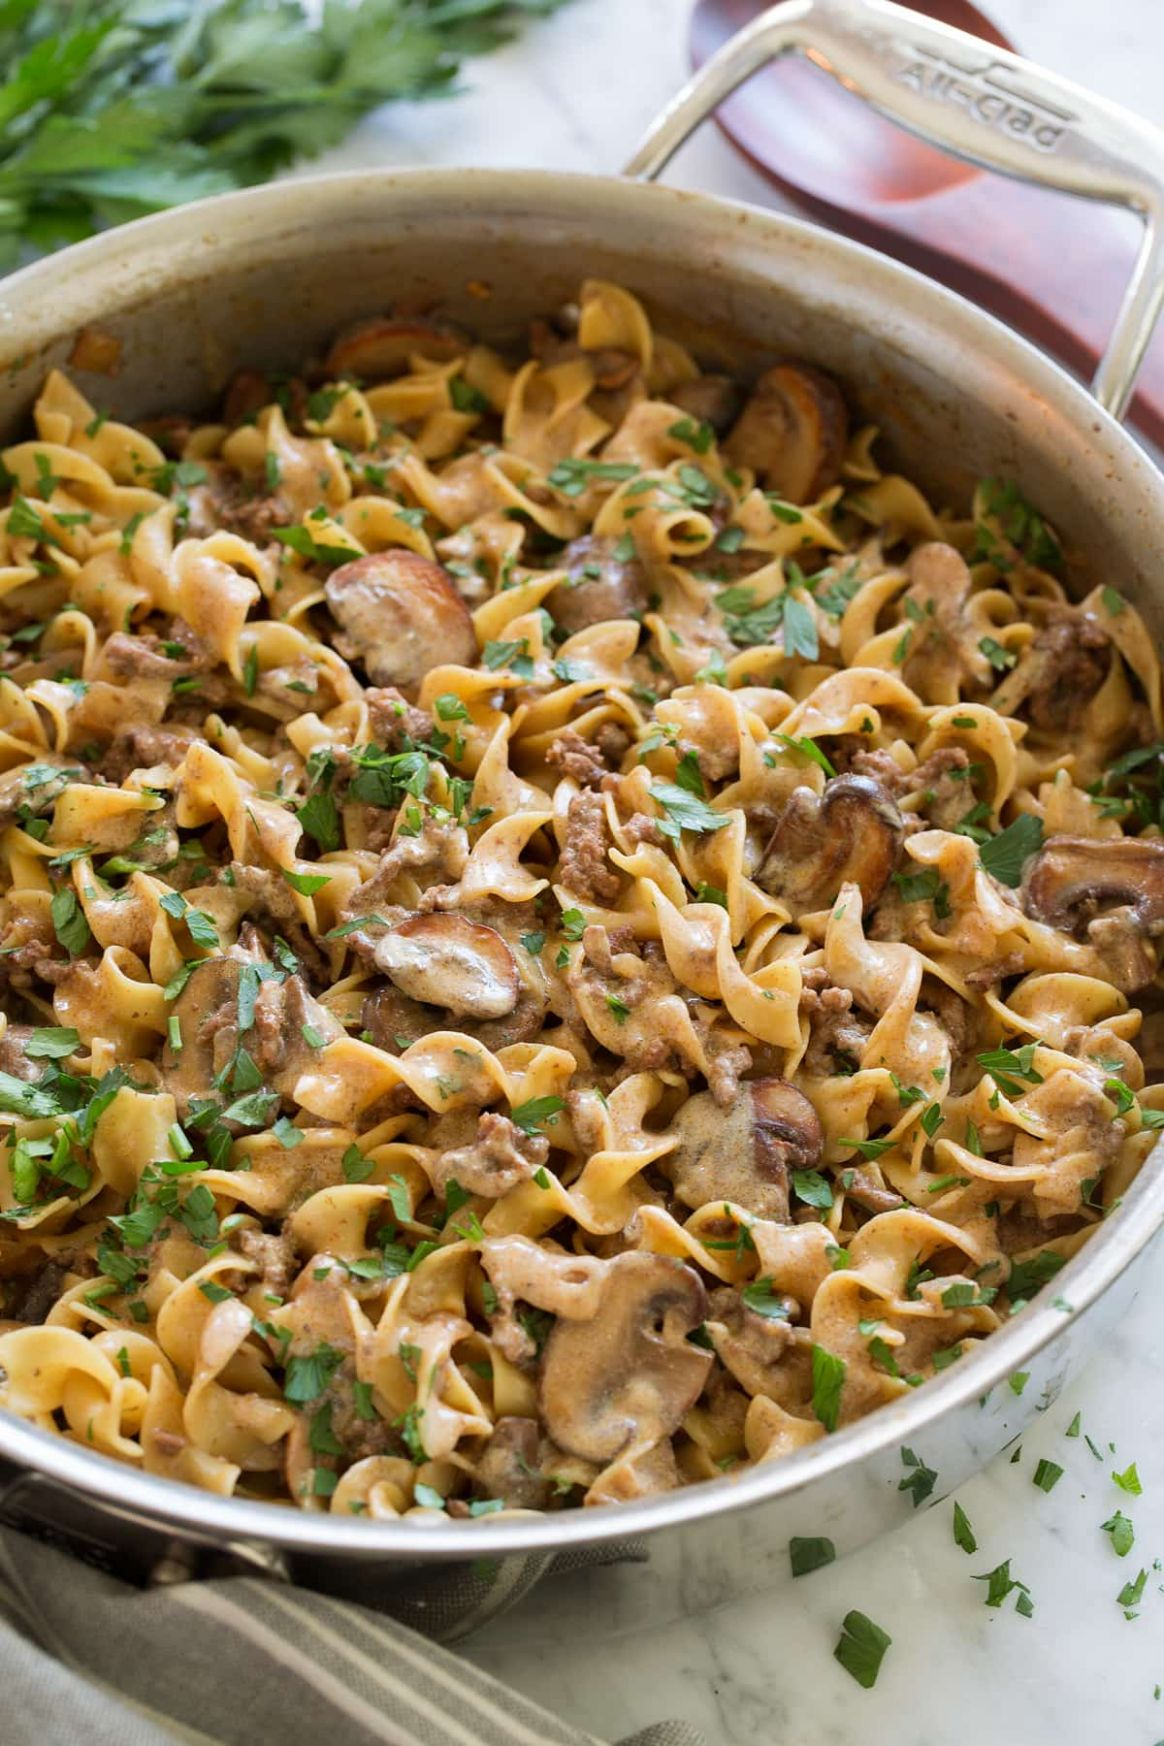 Beef Stroganoff Easy One Pot Recipe! - Cooking Classy